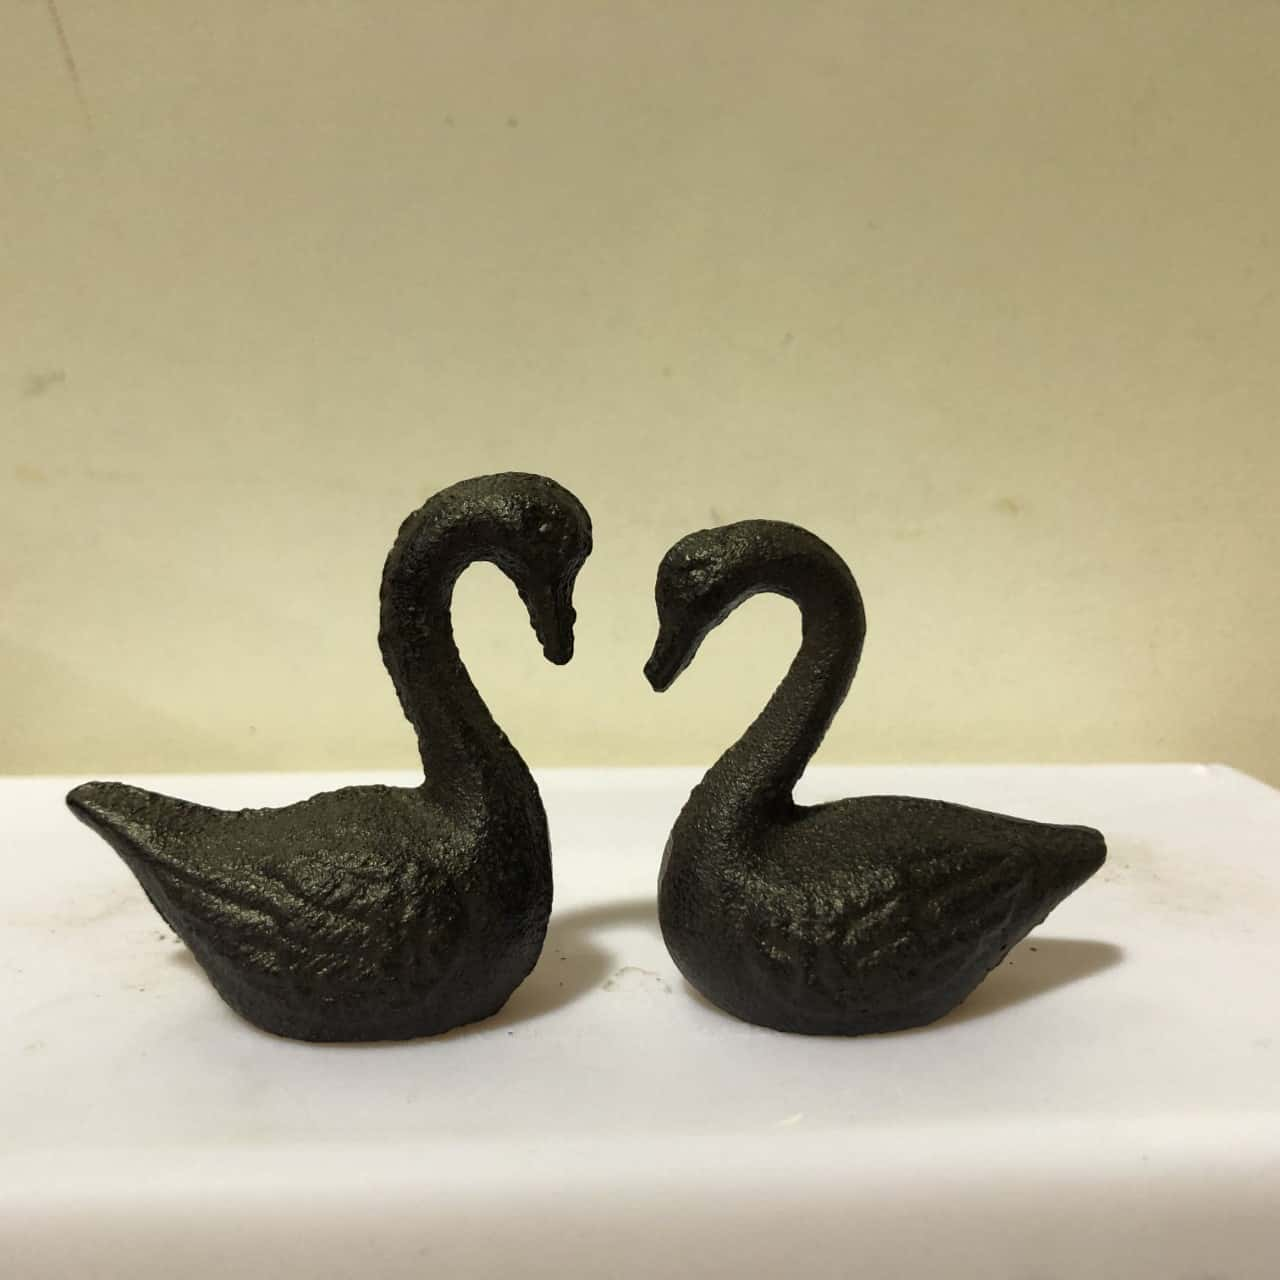 2 small Metal Swans